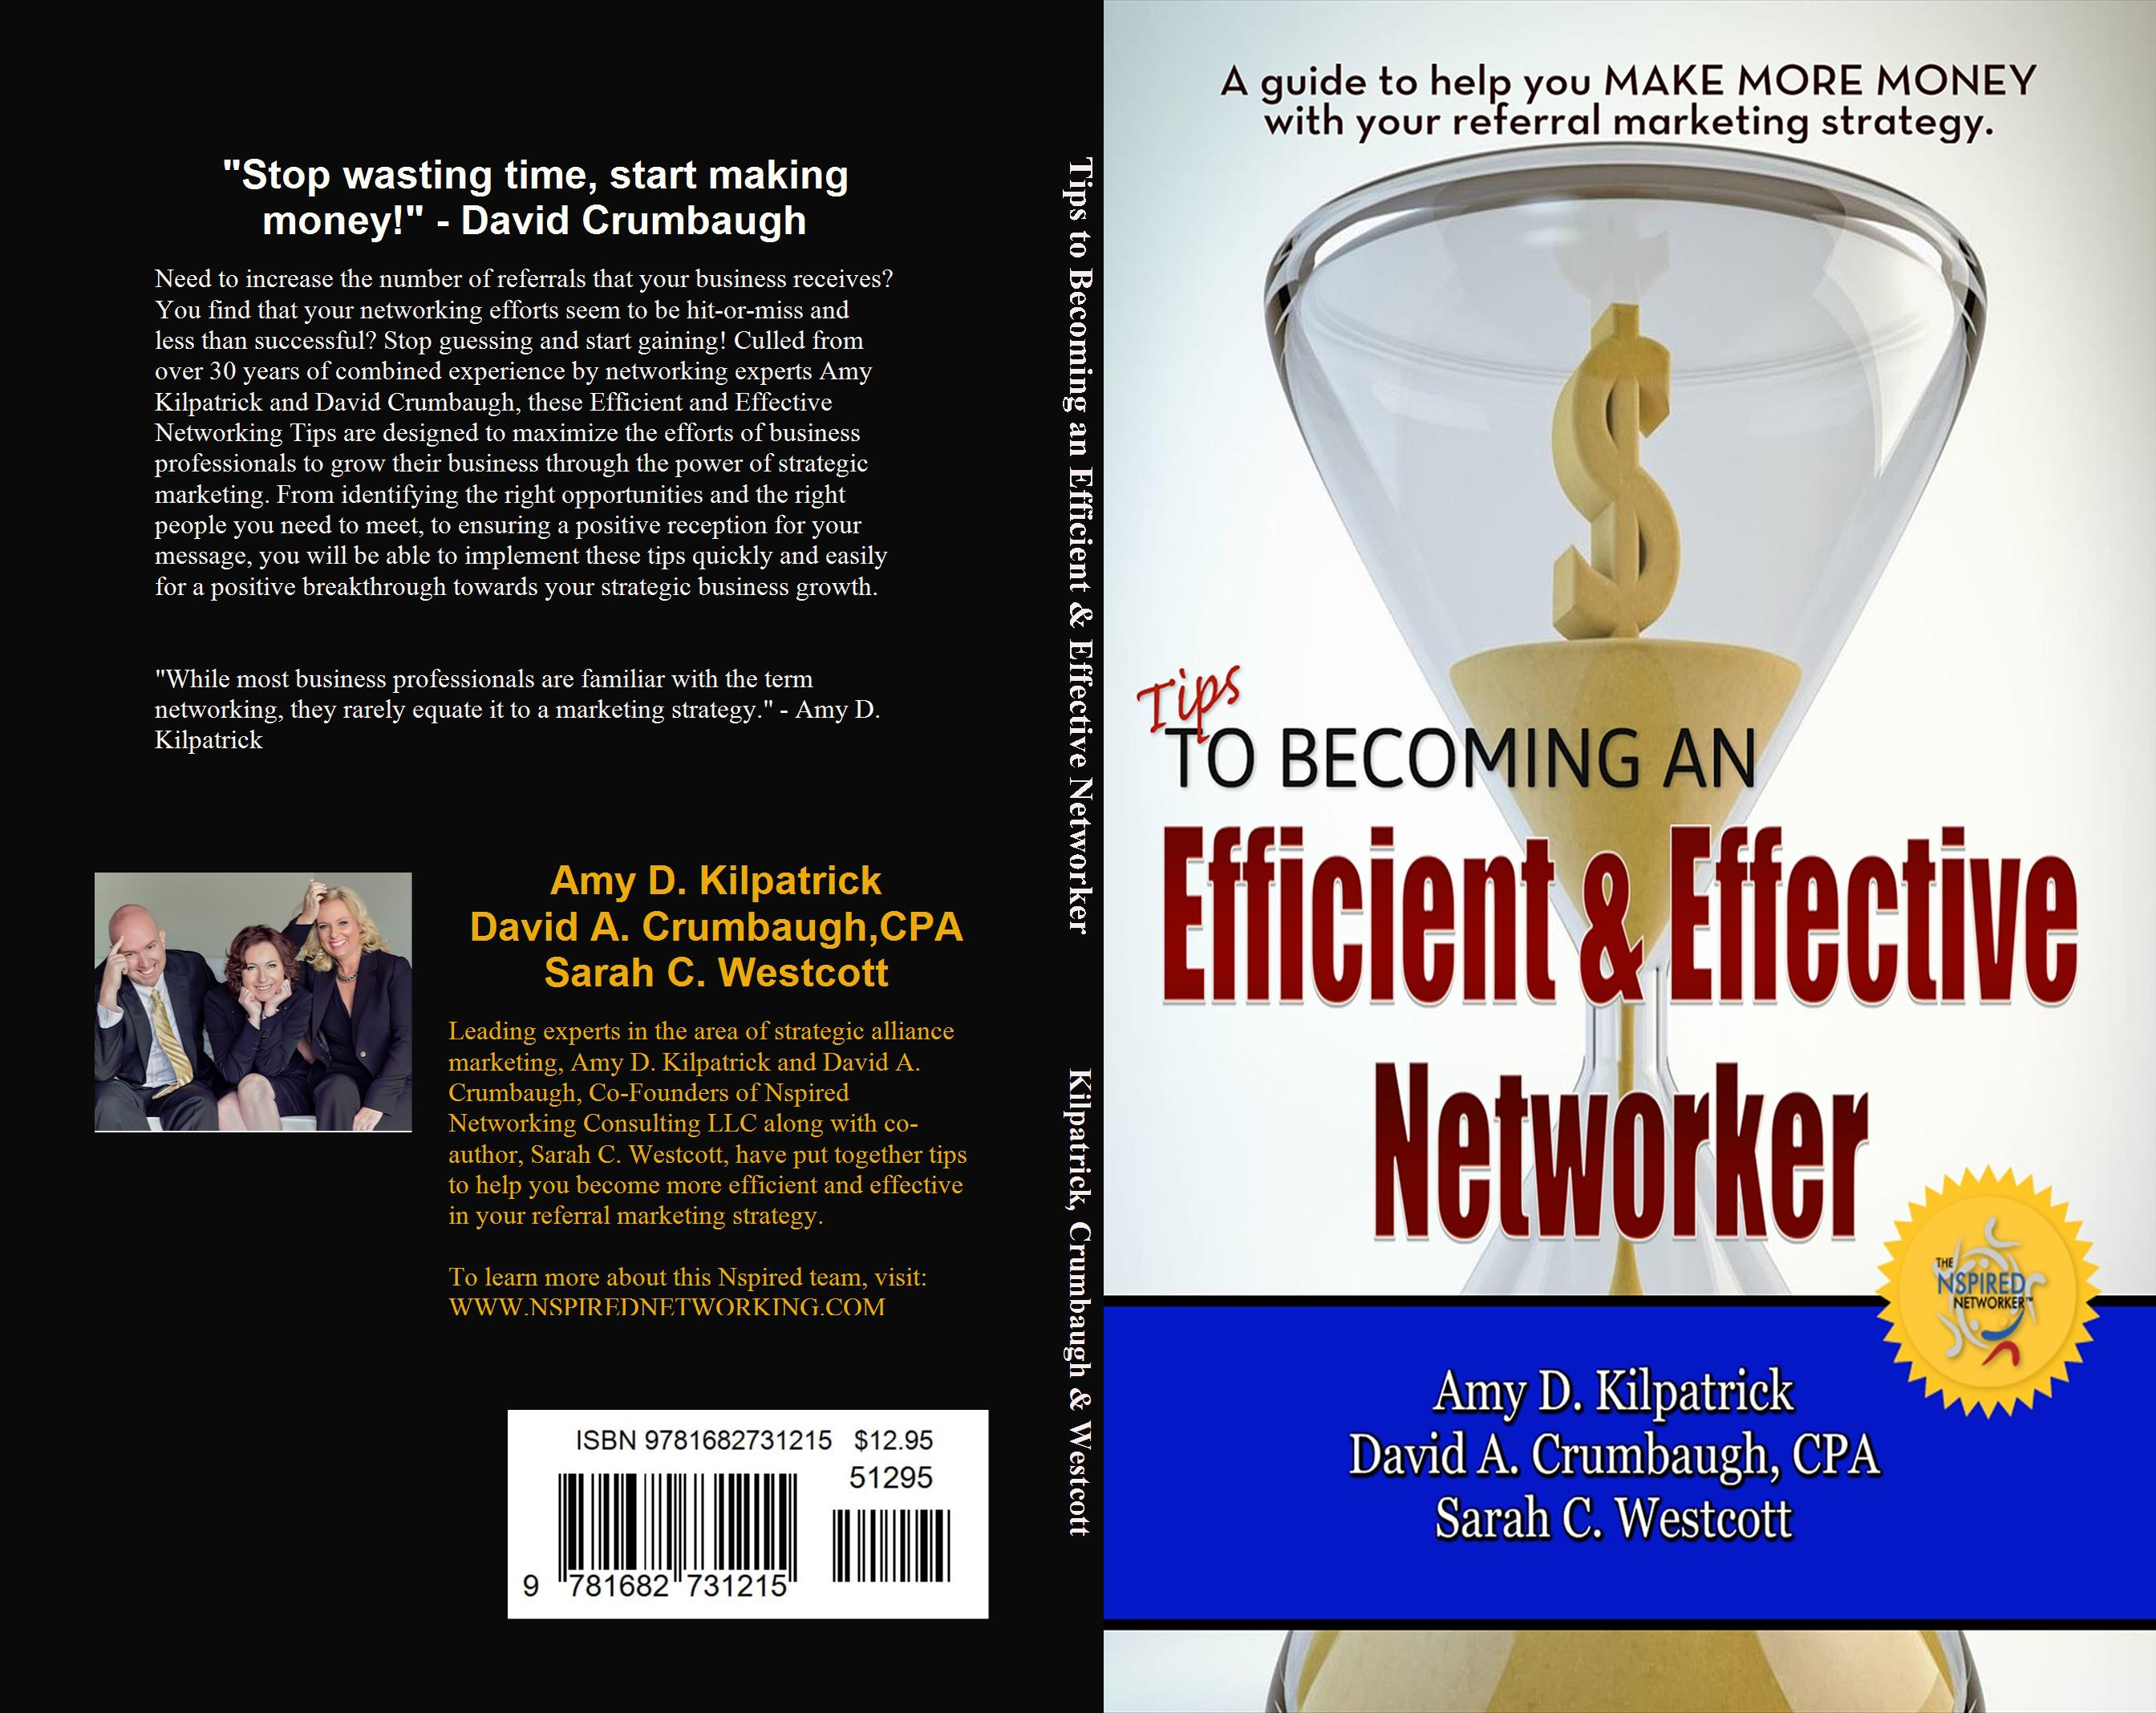 tips to becoming an efficient effective networker by amy d tips to becoming an efficient effective networker cover image